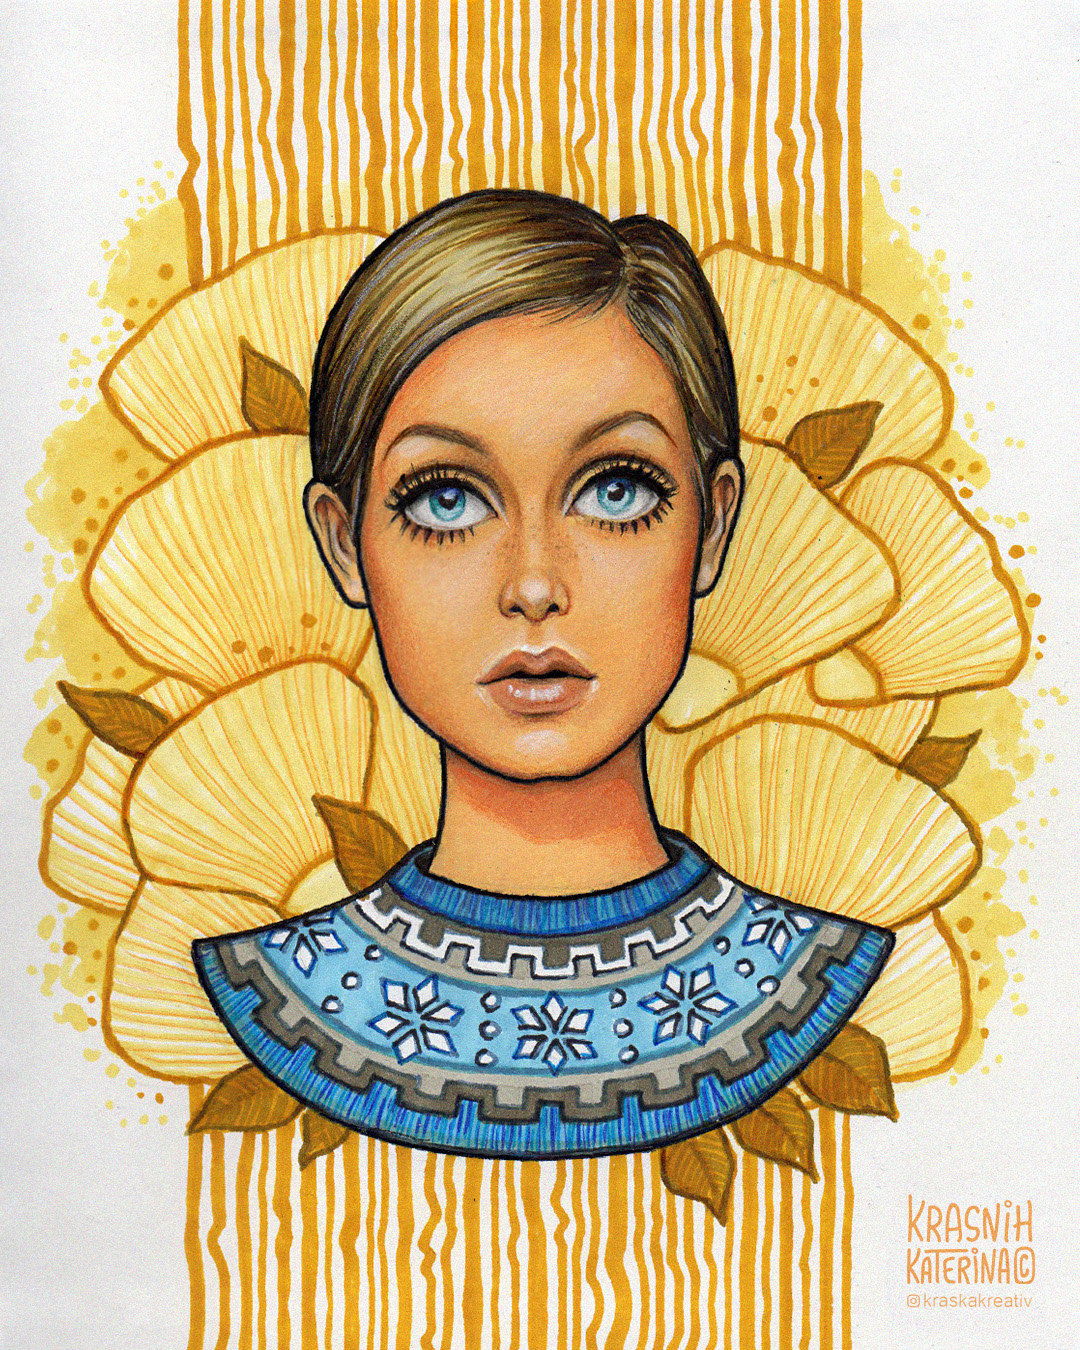 Twiggy cartoon style fine art portrait mixed media illustration by Krasnih Katerina